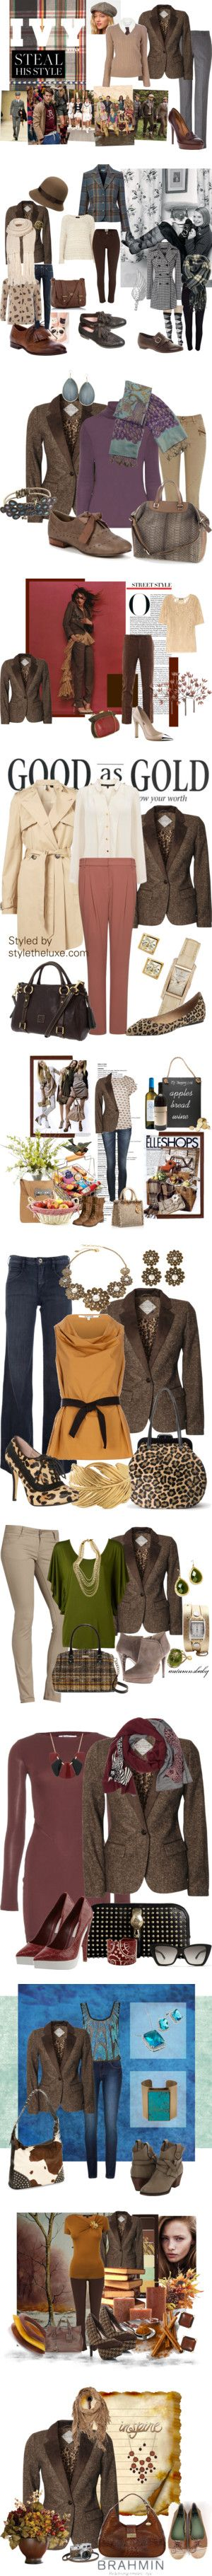 """Ivy League Style"" by zippy2005 ❤ liked on Polyvore"